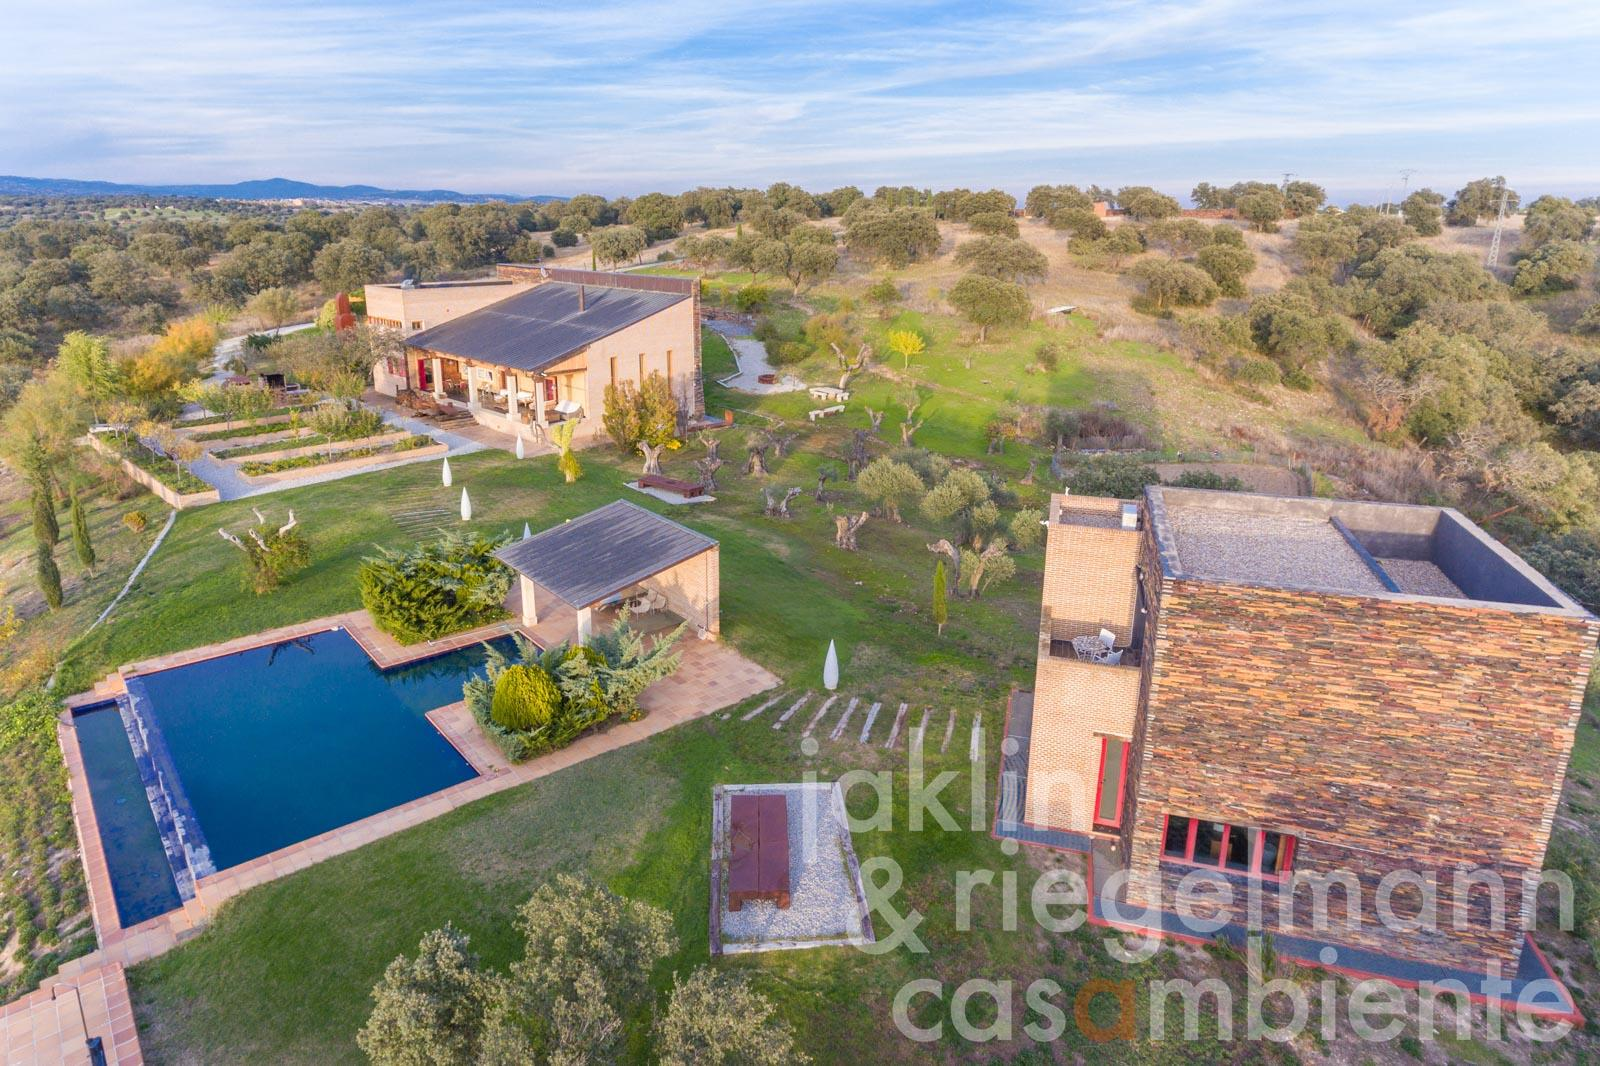 Extraordinary Spanish country estate for sale with guest house, garage and swimming pool 80 km from Madrid